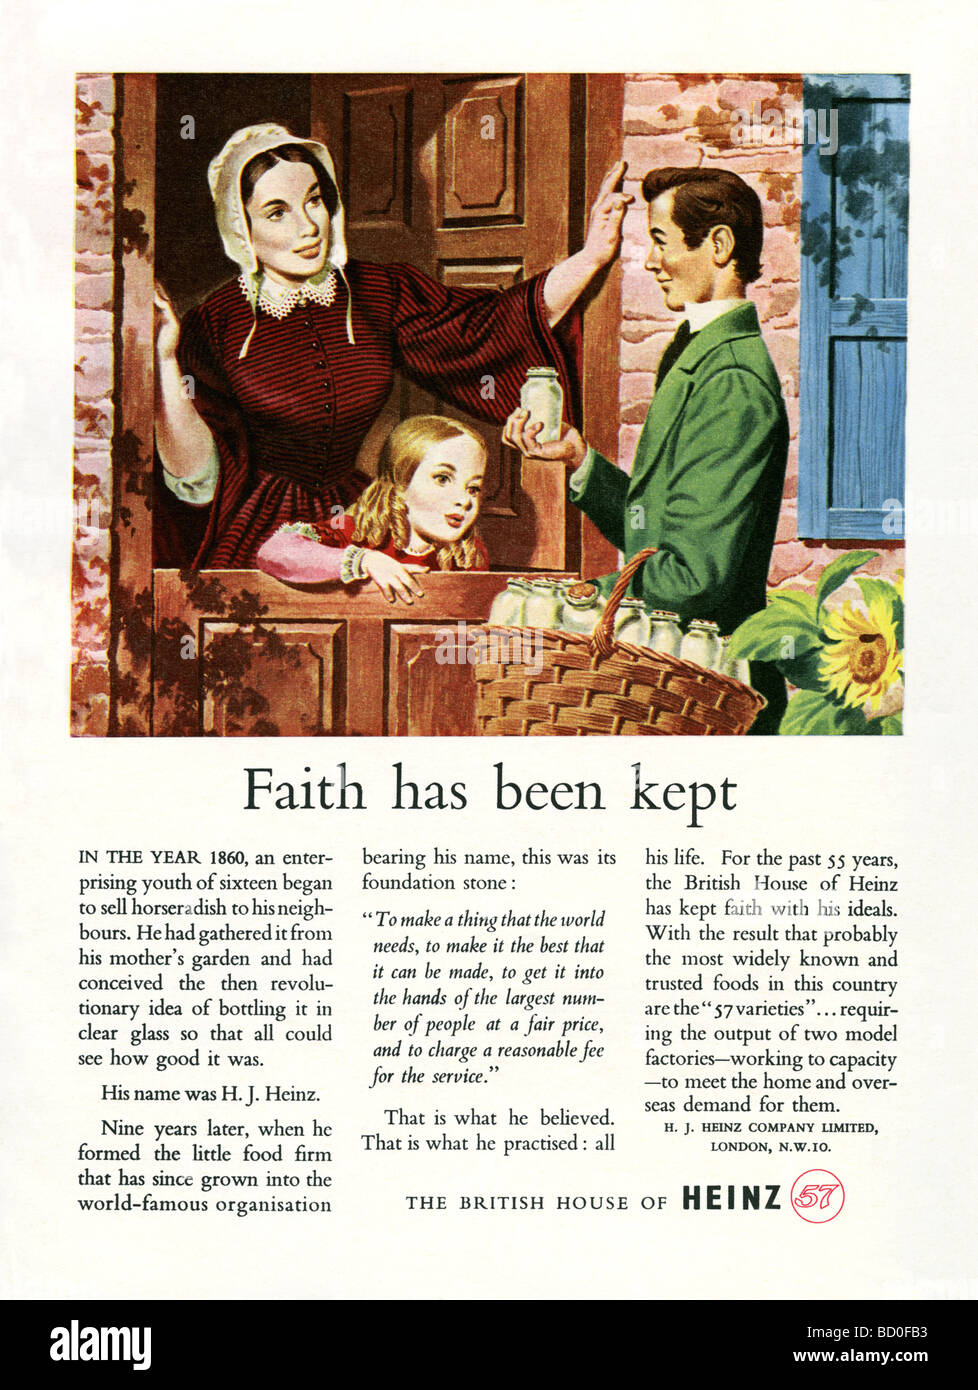 1951 advertisement for food company Heinz and its 57 varieties - Stock Image